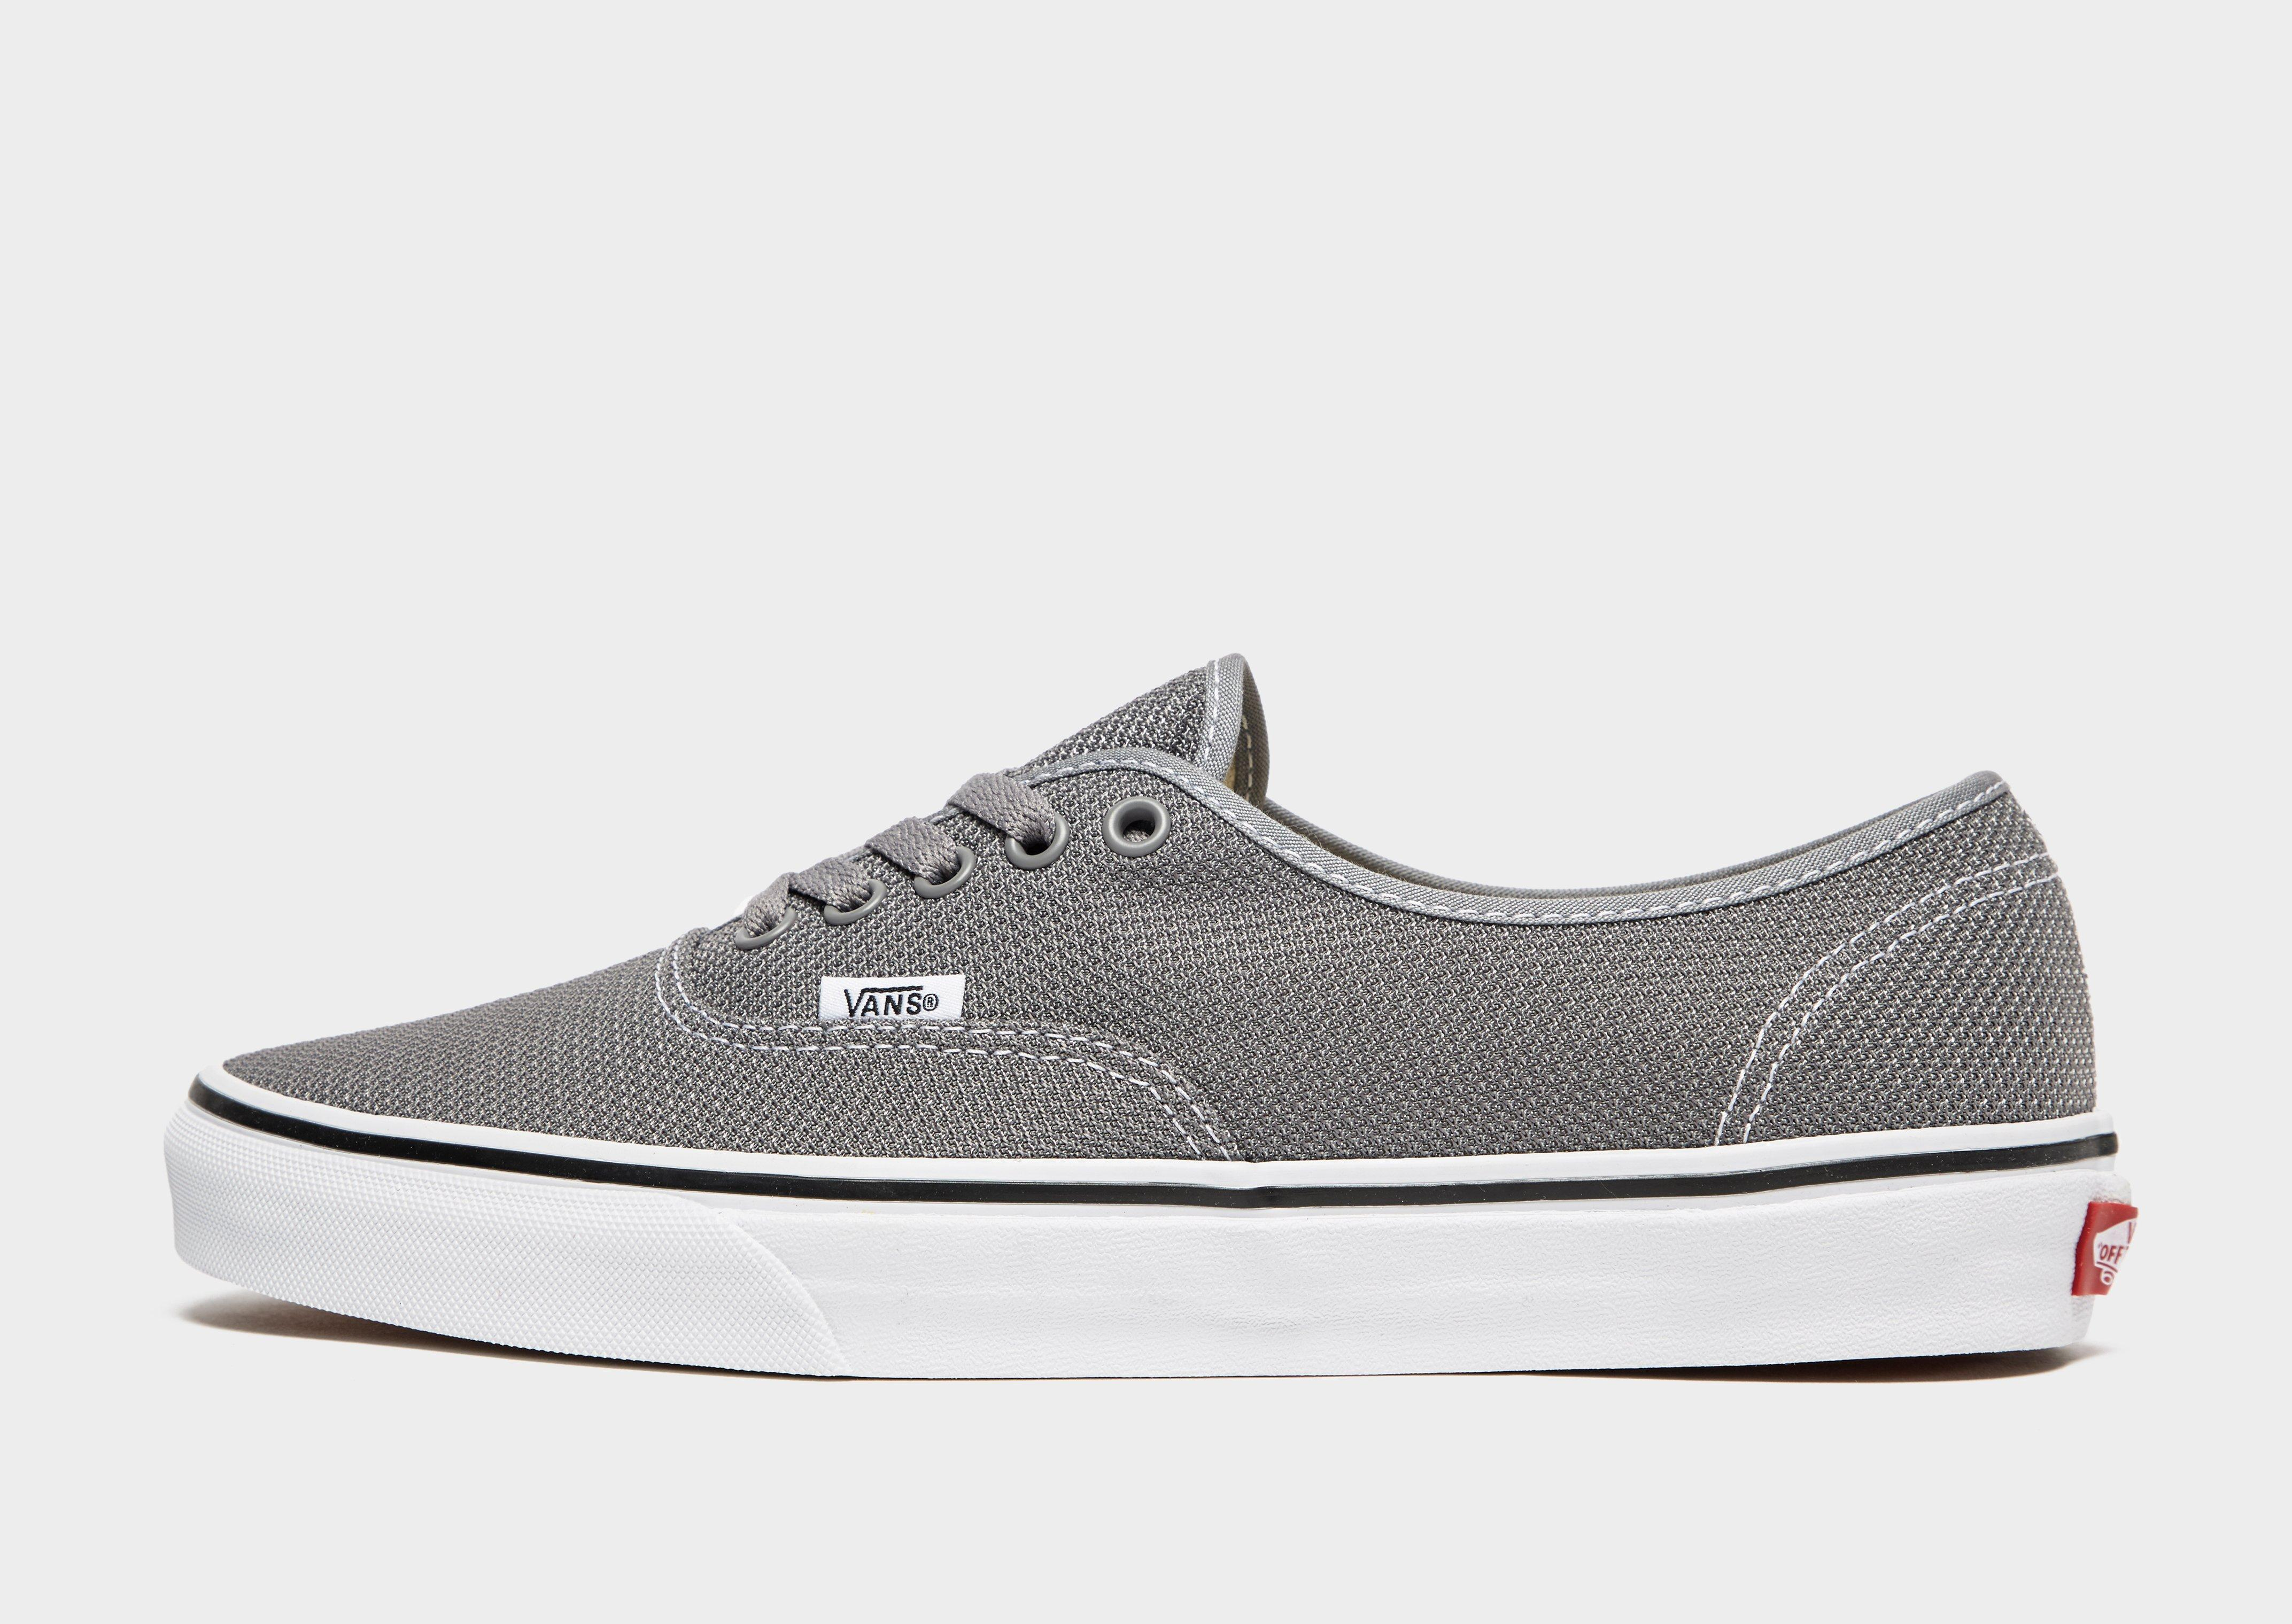 458a8c4036 Lyst - Vans Authentic in Gray for Men - Save 17.391304347826093%